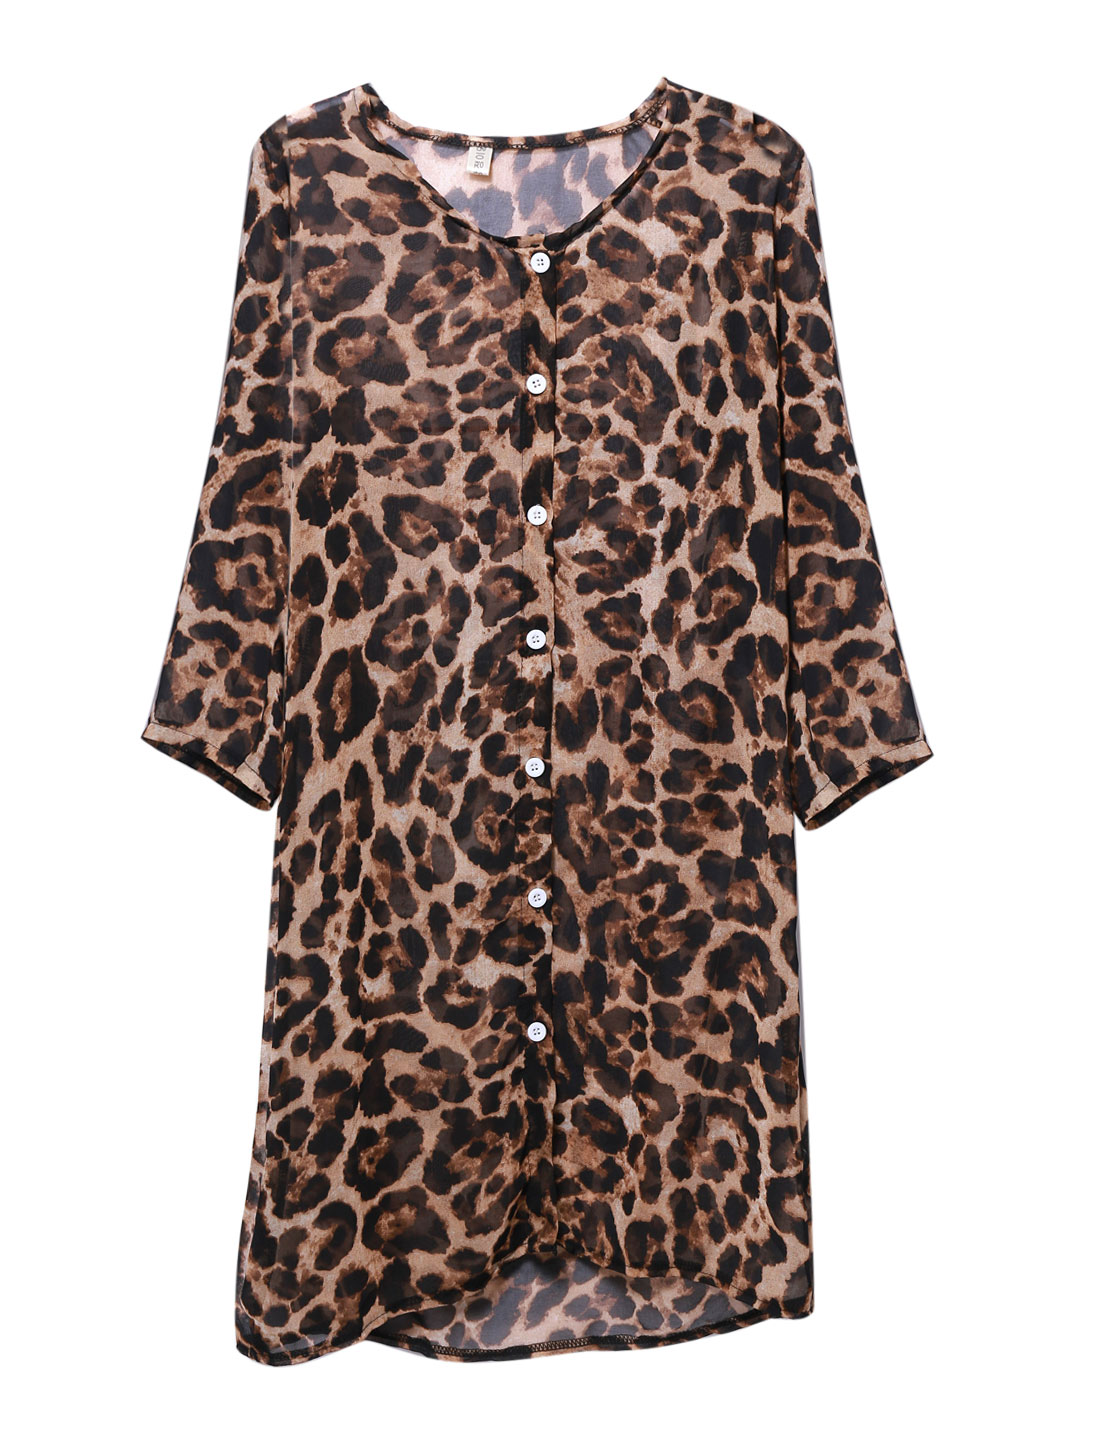 Lady Leopard Pattern Single Breasted Chiffon Tunic Blouse Chocolate S